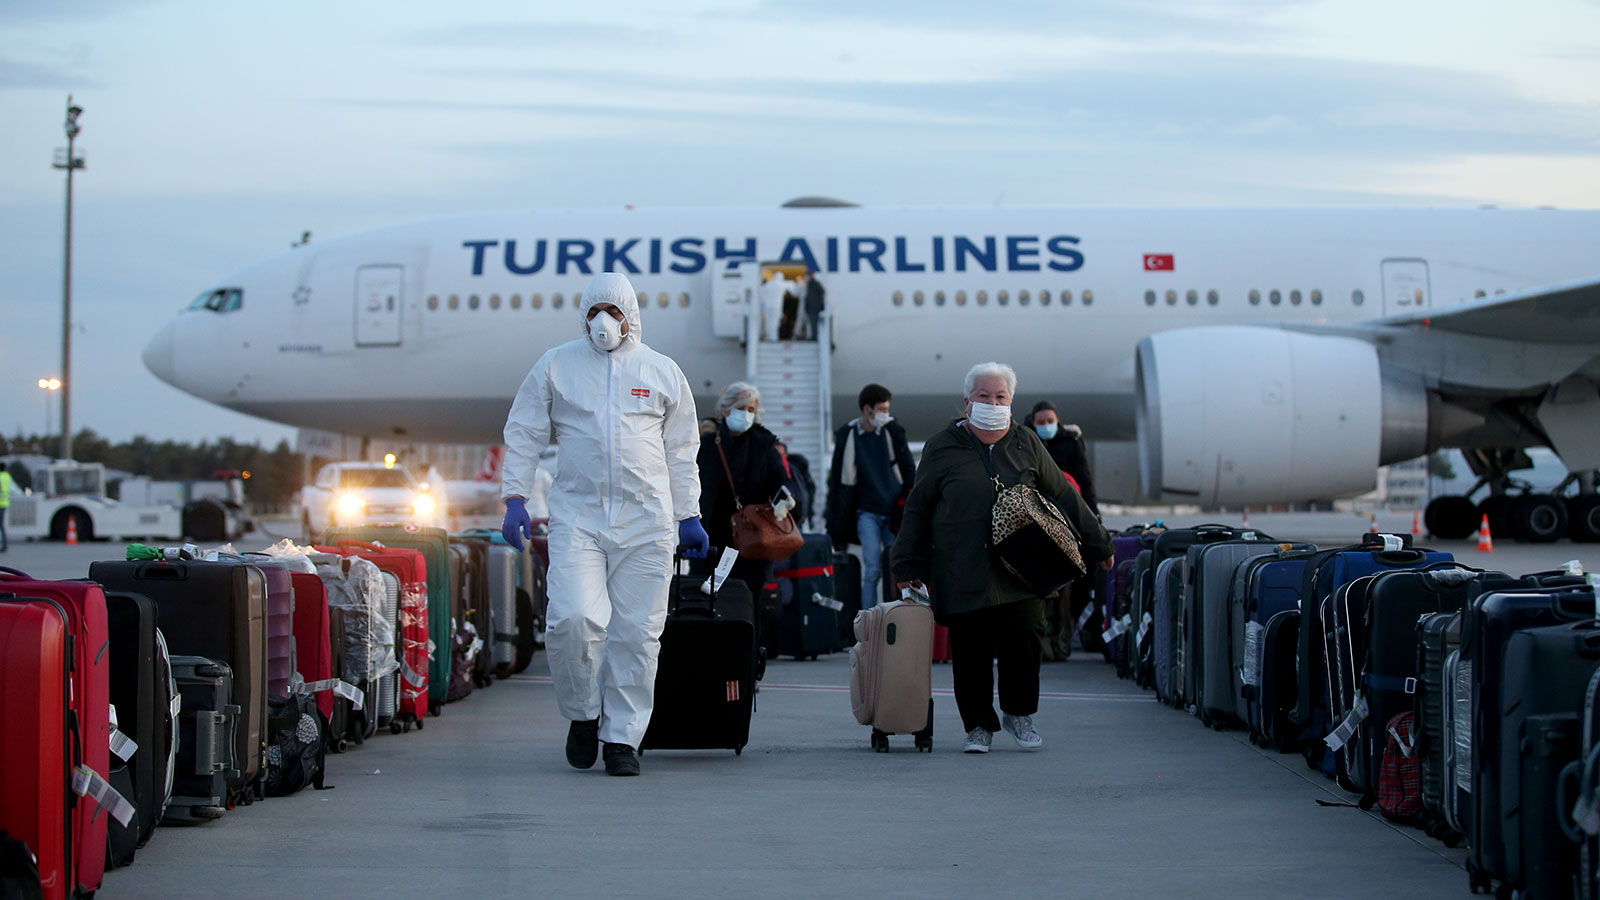 Officials accompany passengers to conduct a health check-up at Esenboga airport in Ankara, Turkey on April 20.